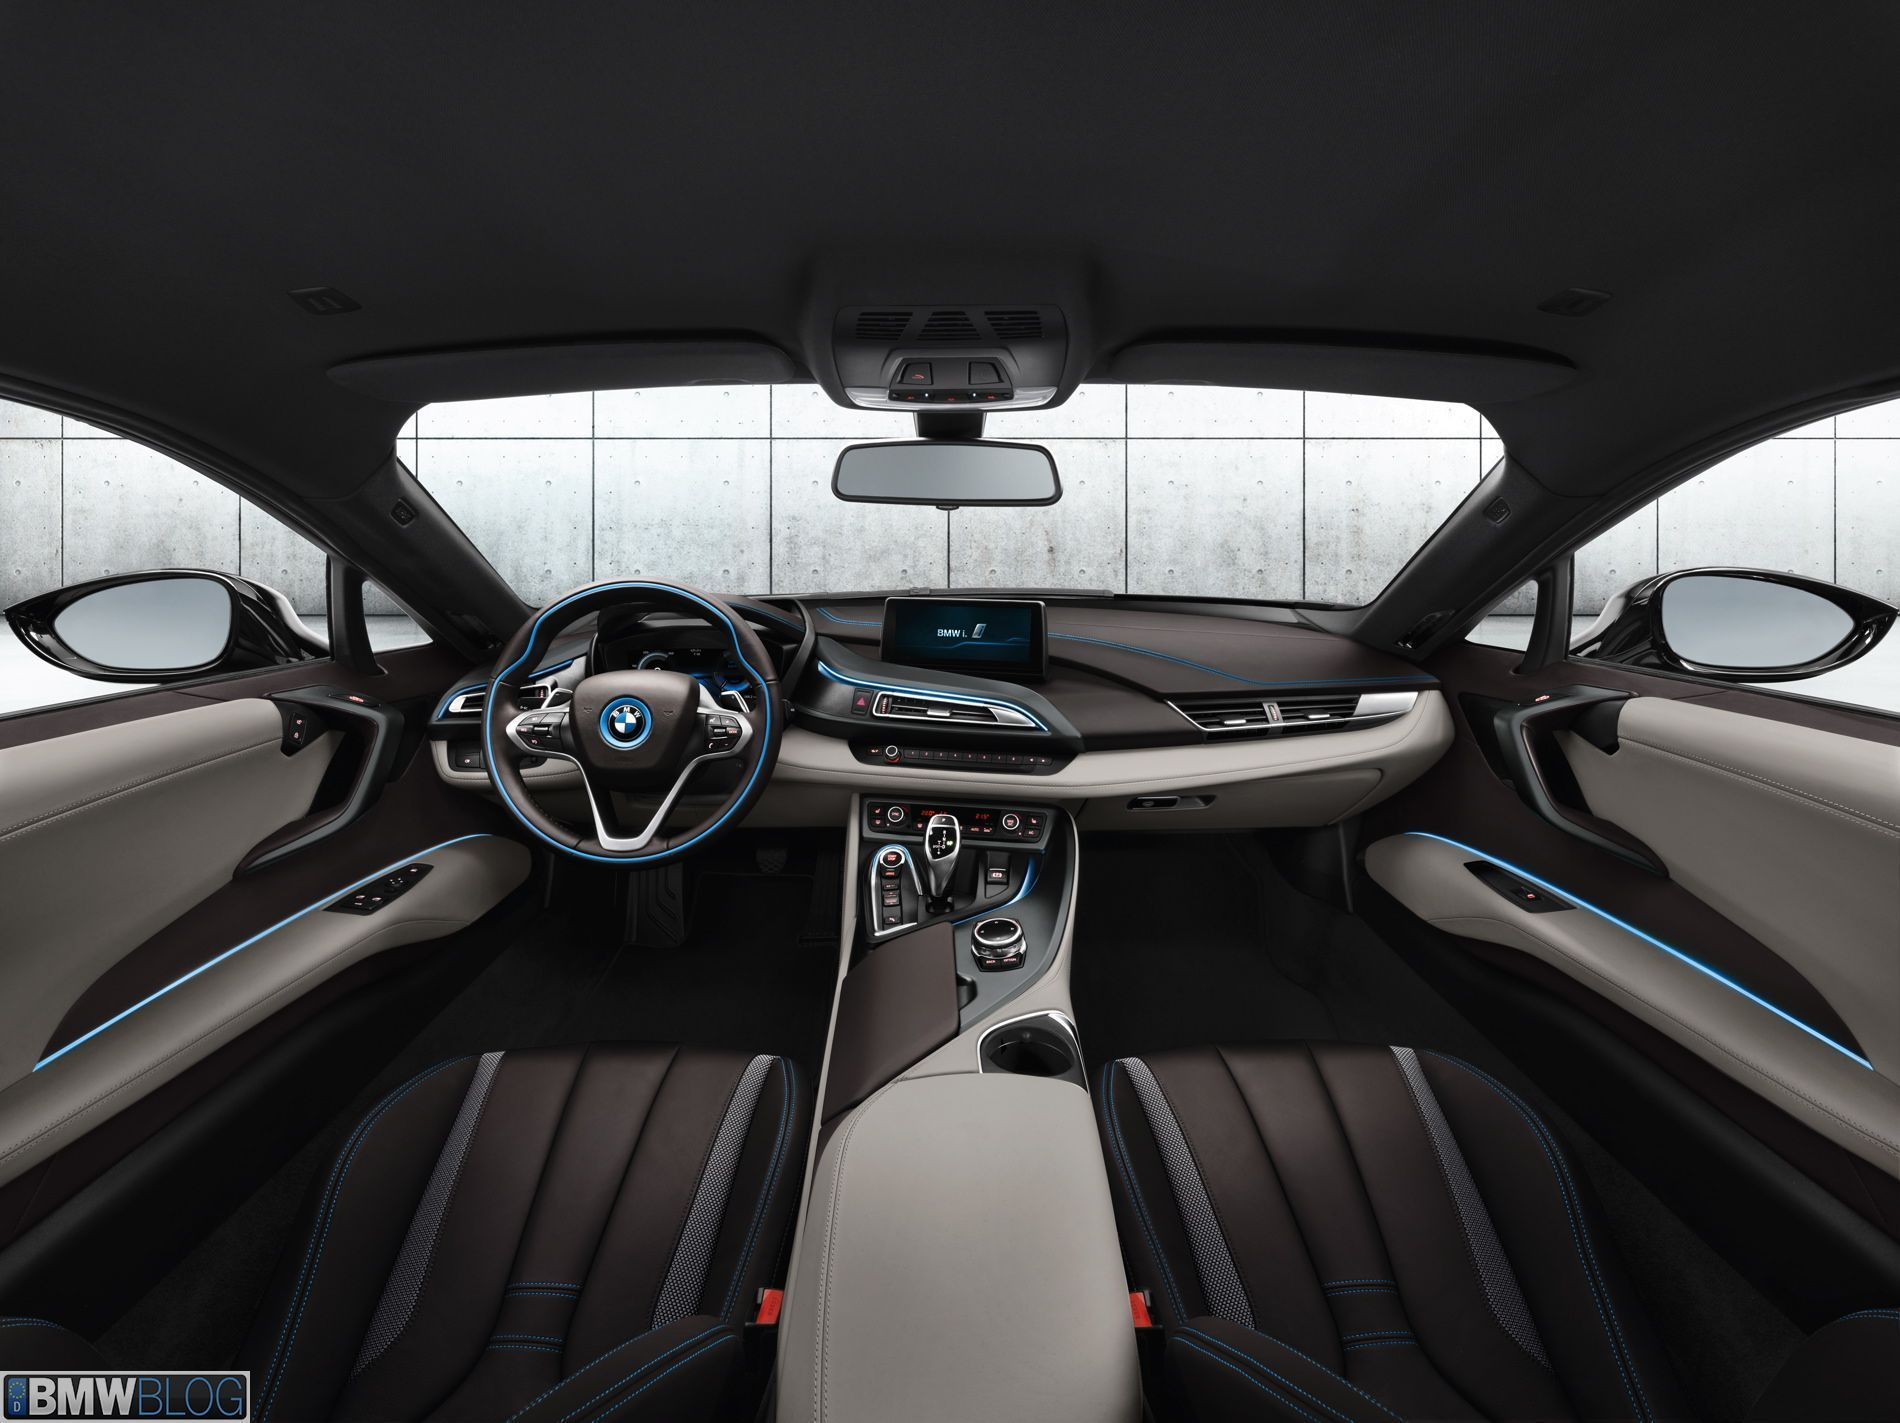 Bmw I8 Black Interior Wallpapers Bmwi8black Bmwi8interior Bmw I8